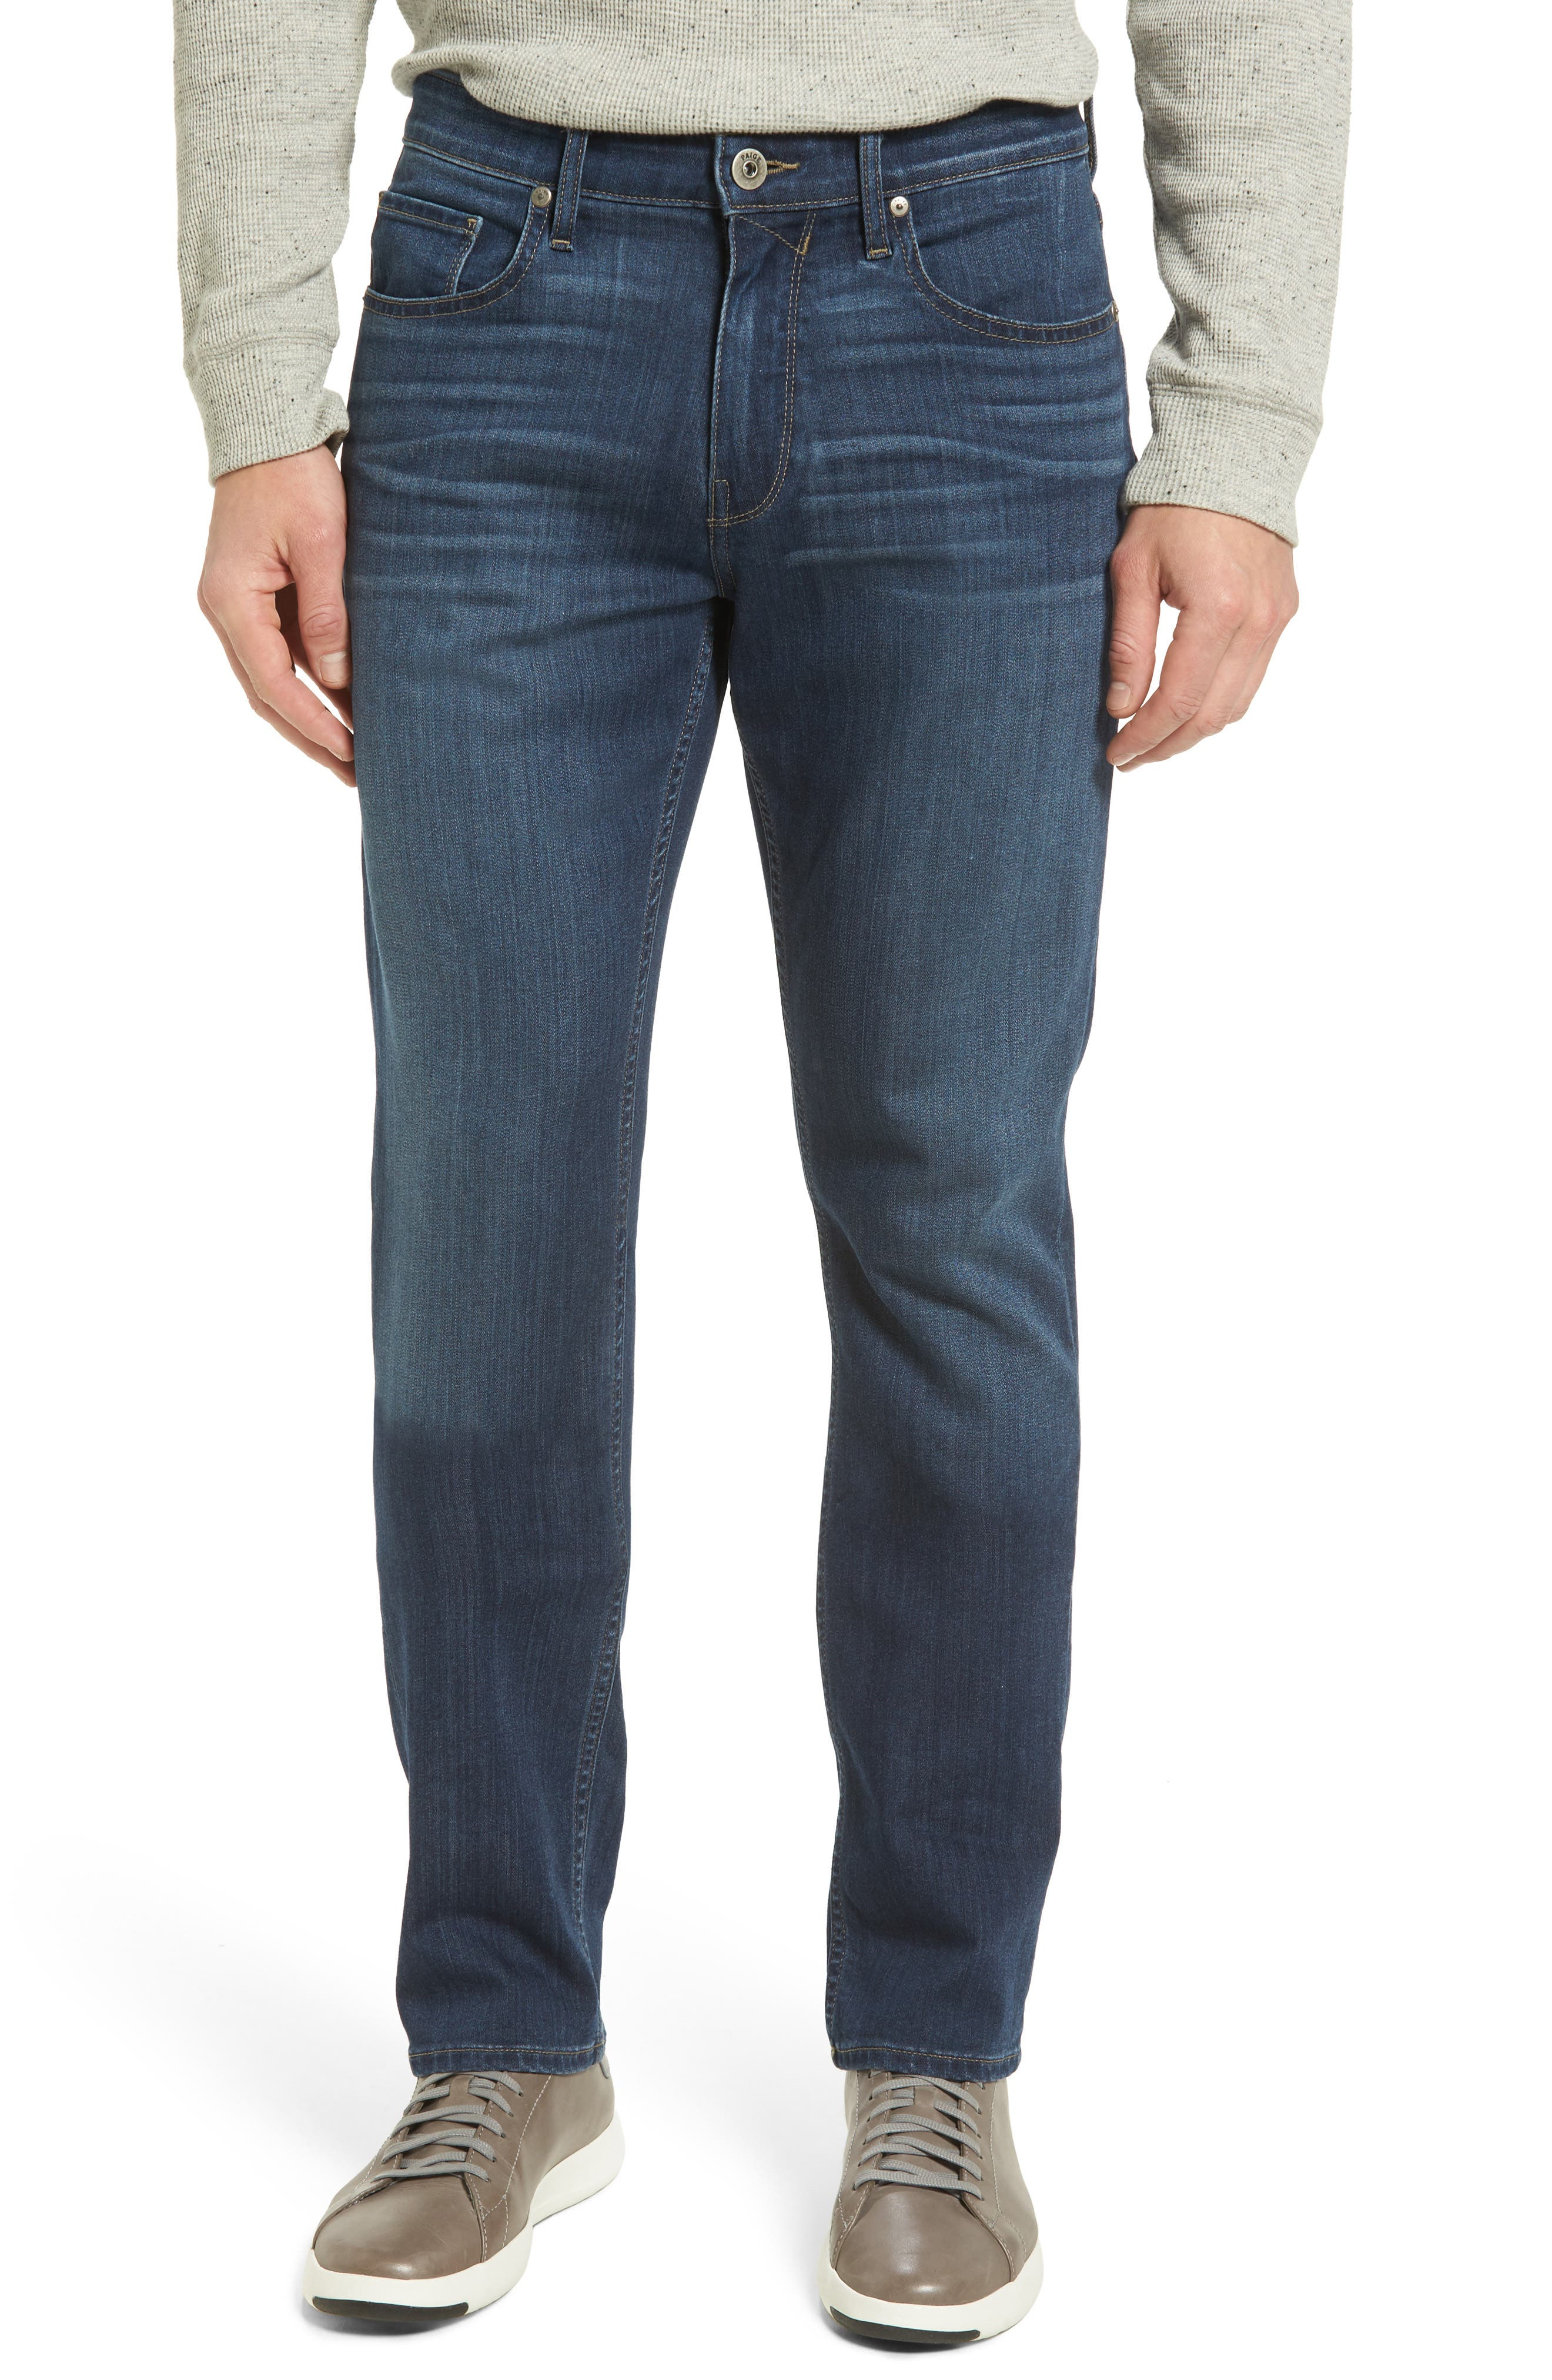 Transcend - Federal Slim Straight Leg Jeans,                         Main,                         color, 400